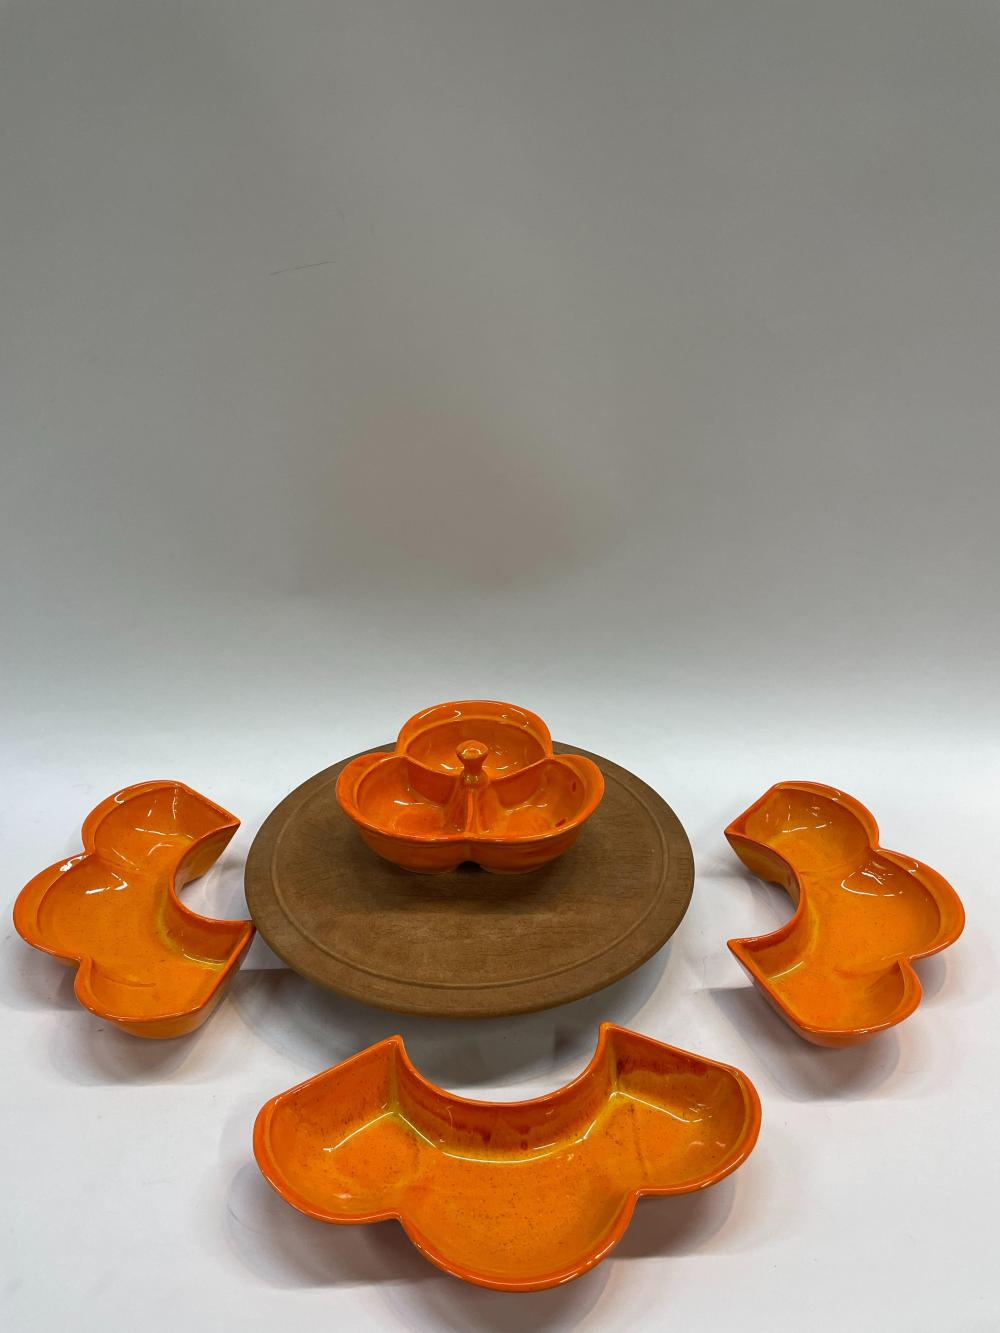 An American Mid-Century Flower Shaped Nut Dish in Four Parts with Timber Lazy Susan